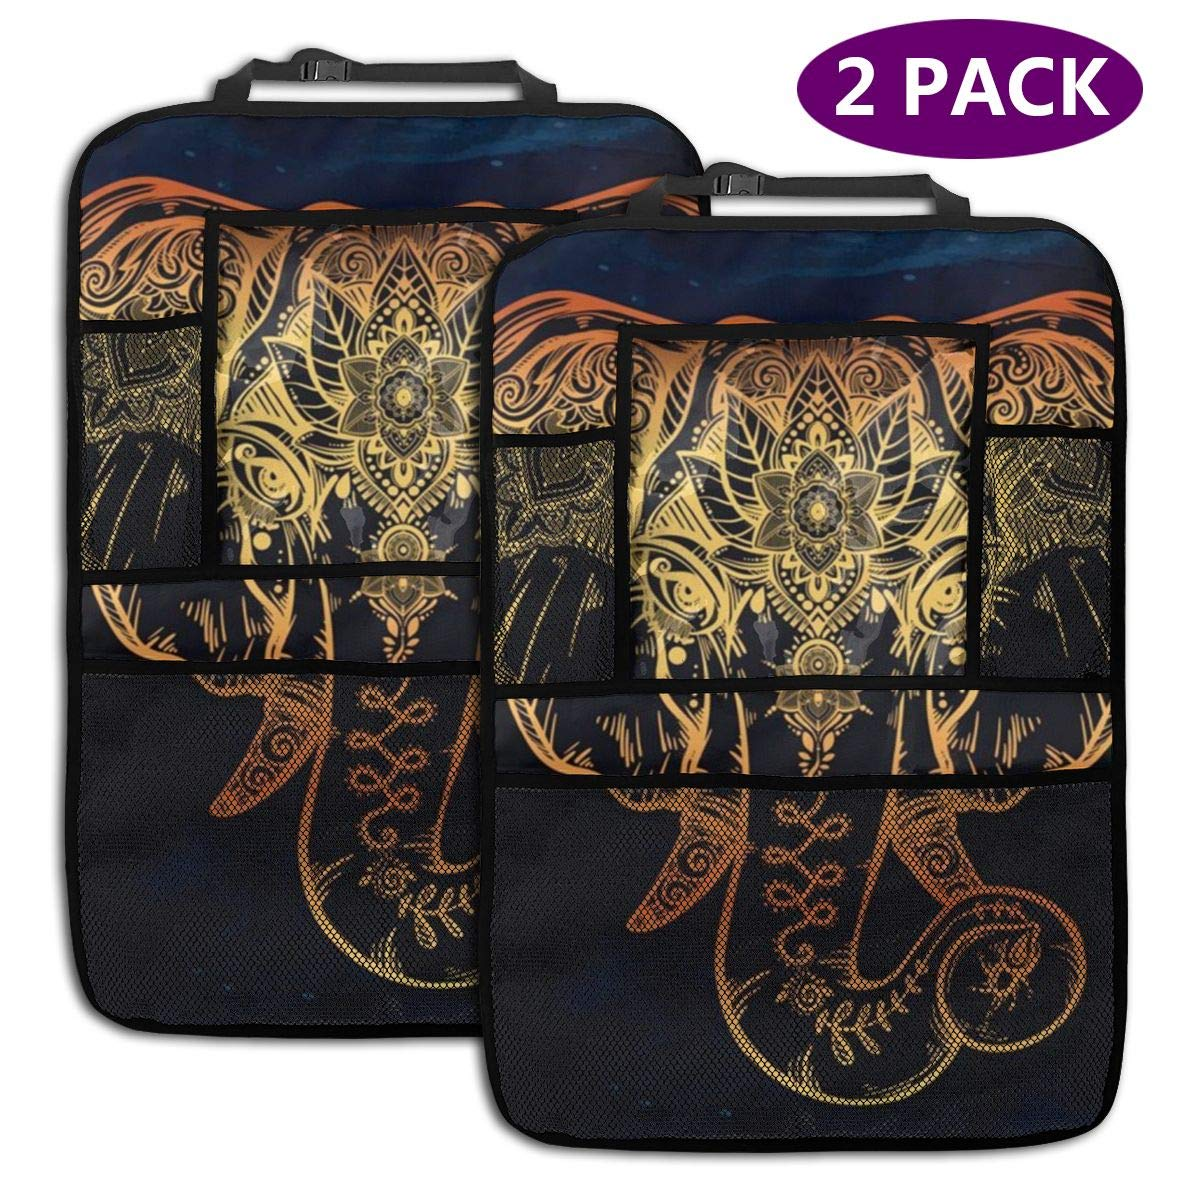 QF6FEICHAN The Golden Elephant Car Seat Back Protectors with Storage Pockets Kick Mats Accessories for Kids and Toddlers by QF6FEICHAN